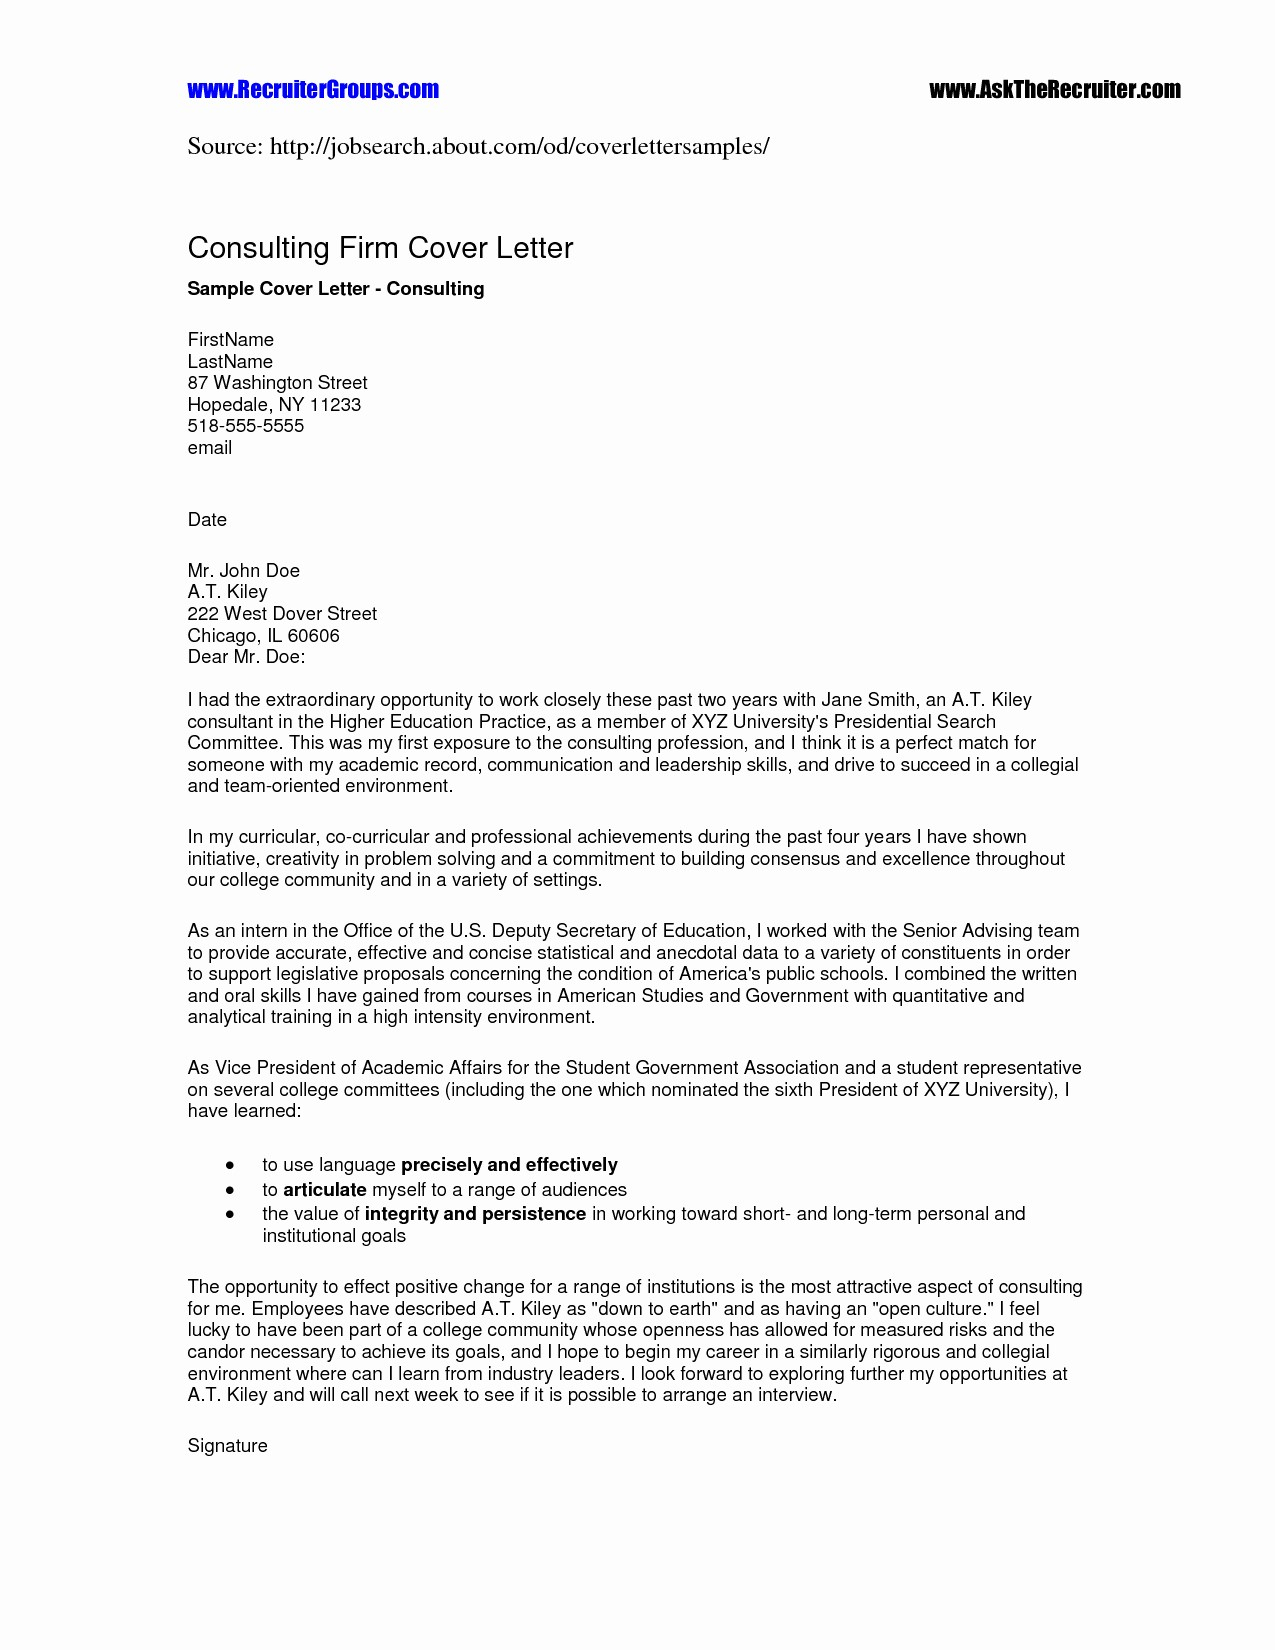 Job Offer Letter Template Word - Employment Fer Letter Template Doc Copy Resignation Letter Sample